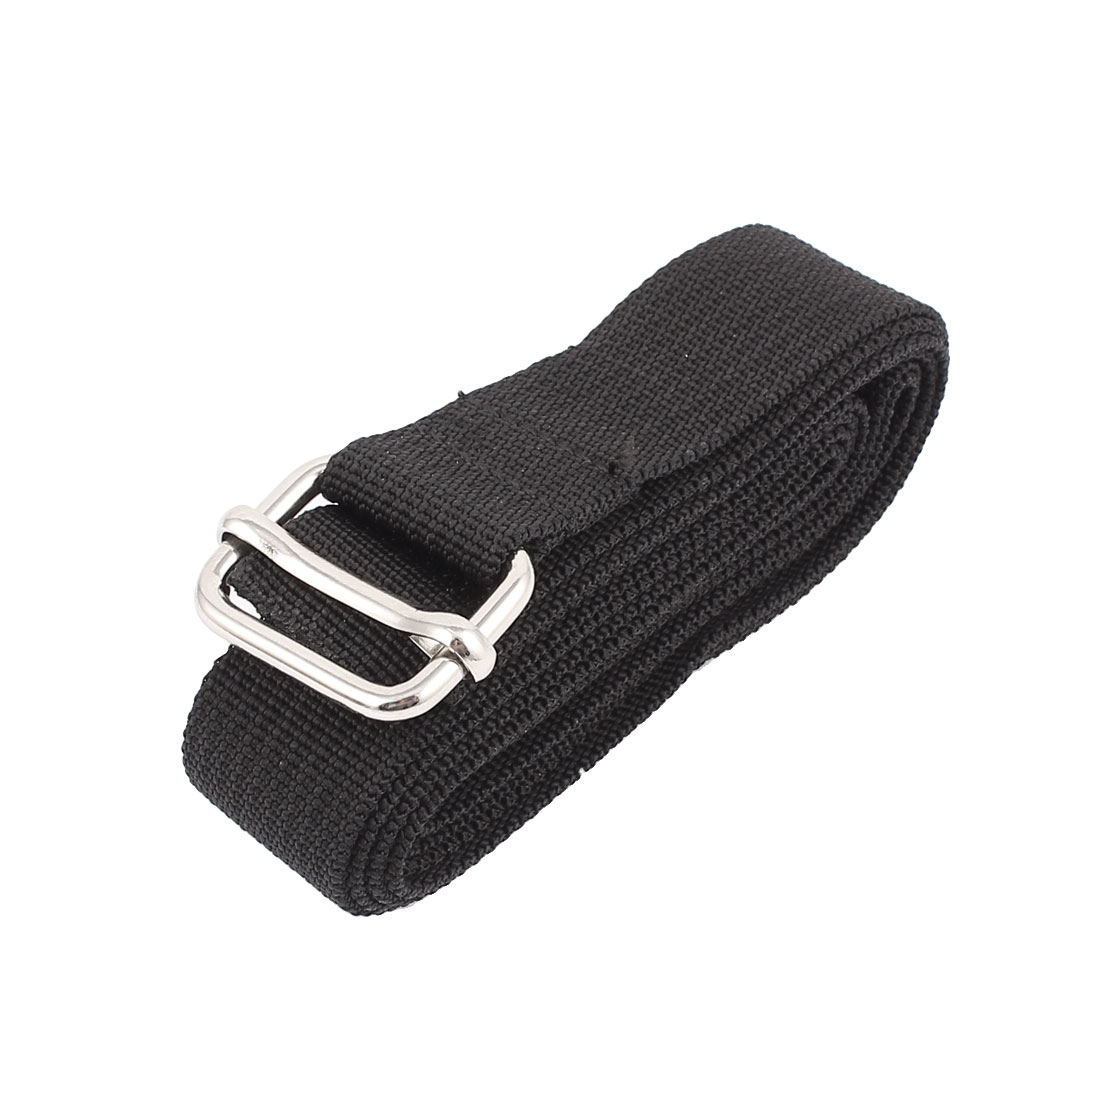 Outdoor Travel Metal Buckle Adjustable Luggage Suitcase Packing Strap Belt Band 2M x 25mm